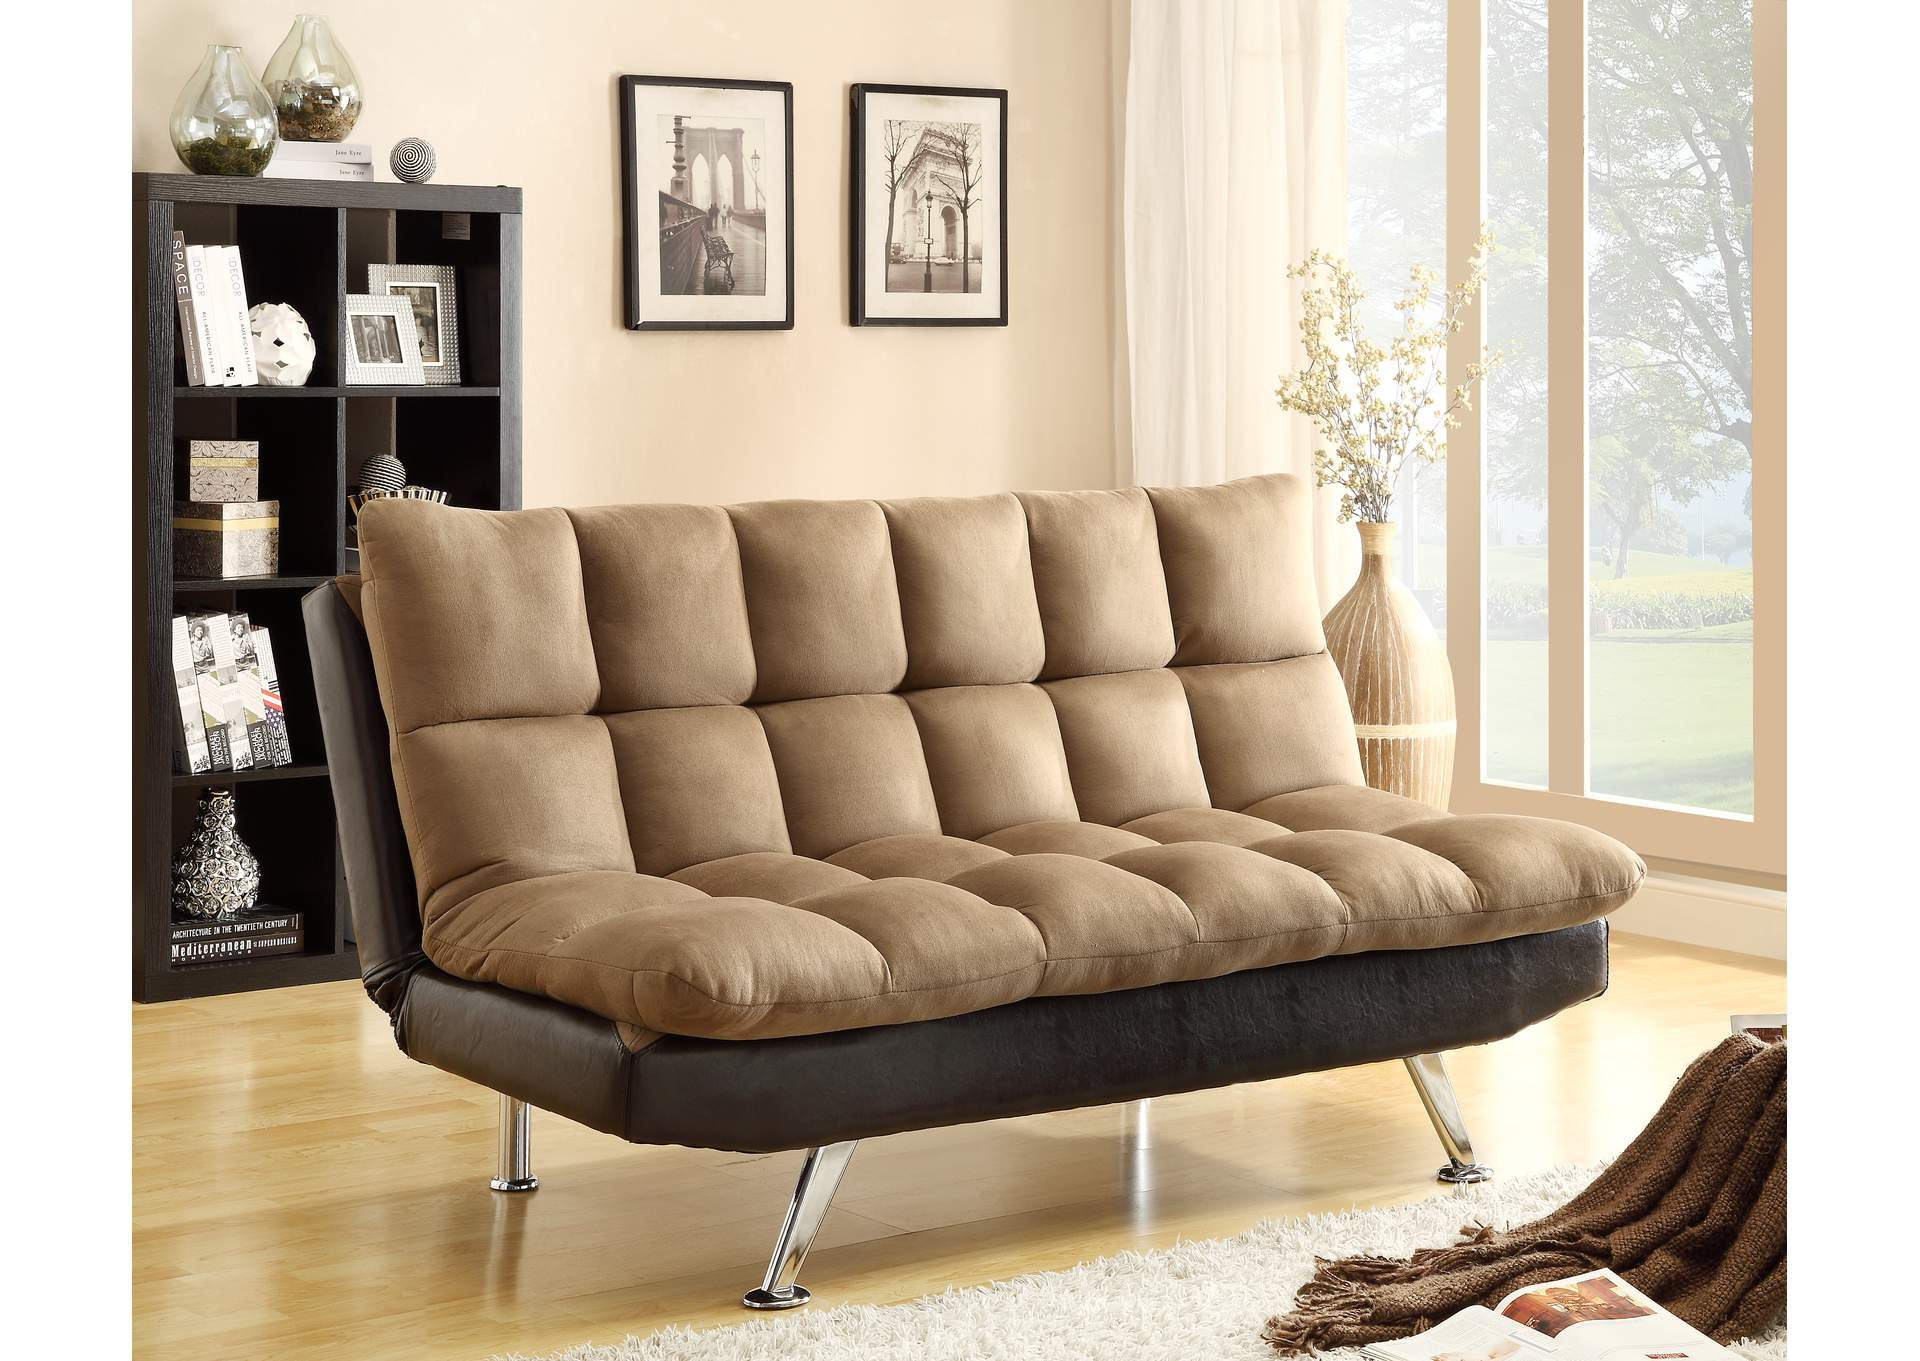 Sundown Espresso/Pebble Adjustable Sofa,Crown Mark